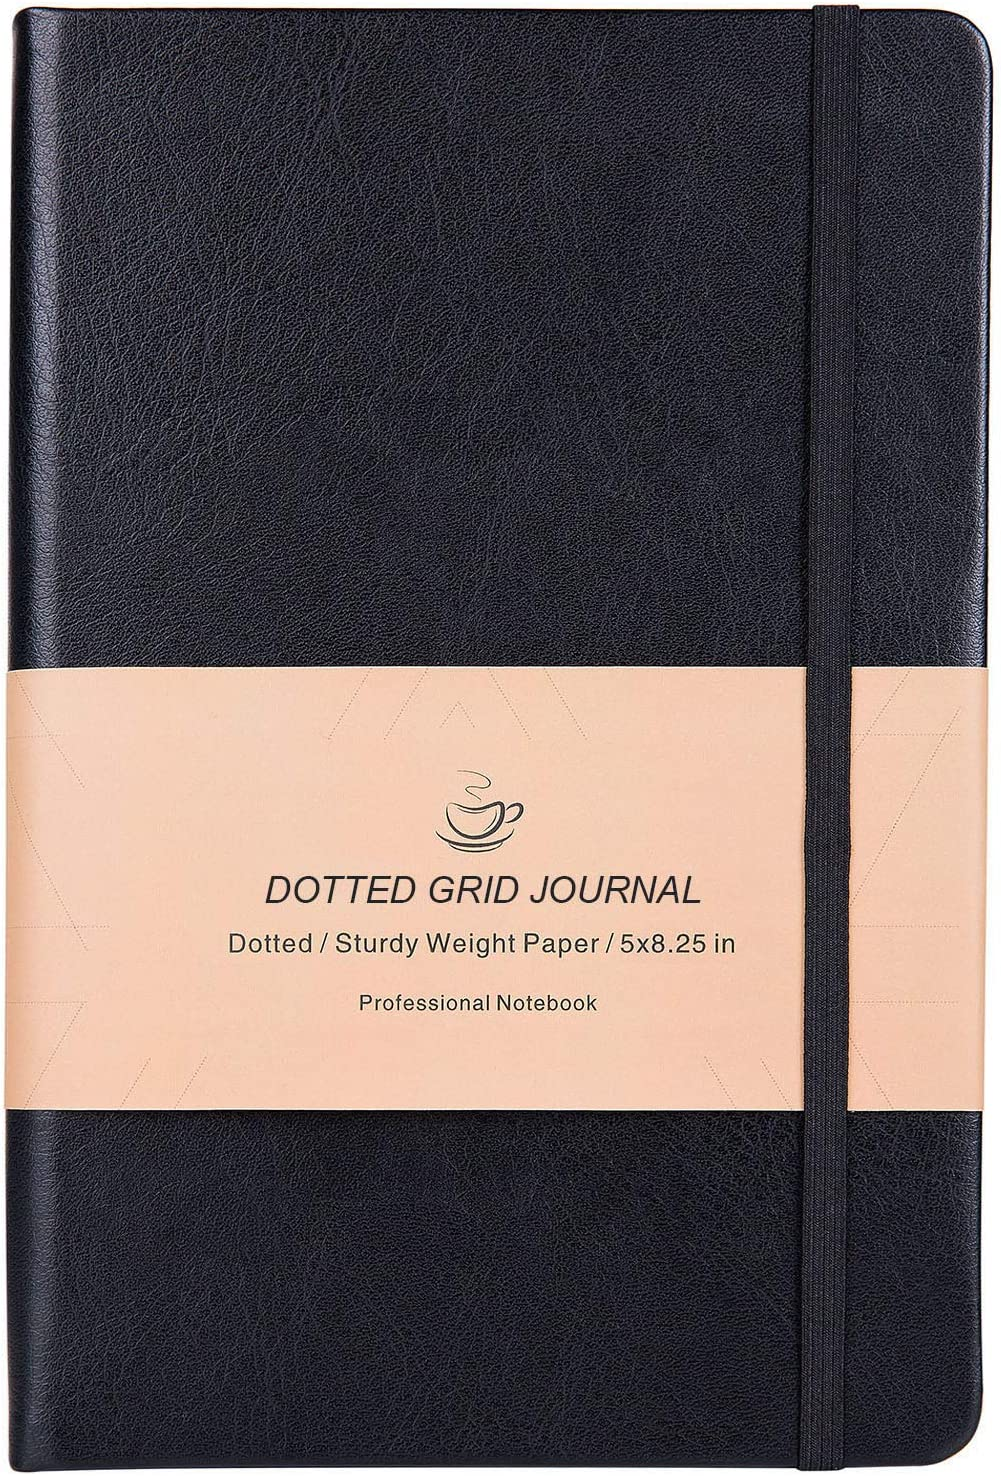 Dotted Grid Notebook/Journal - Dot Grid Hard Cover Notebook, Premium Thick Paper with Fine Inner Pocket, Black Smooth Faux Leather, 5''×8.25''